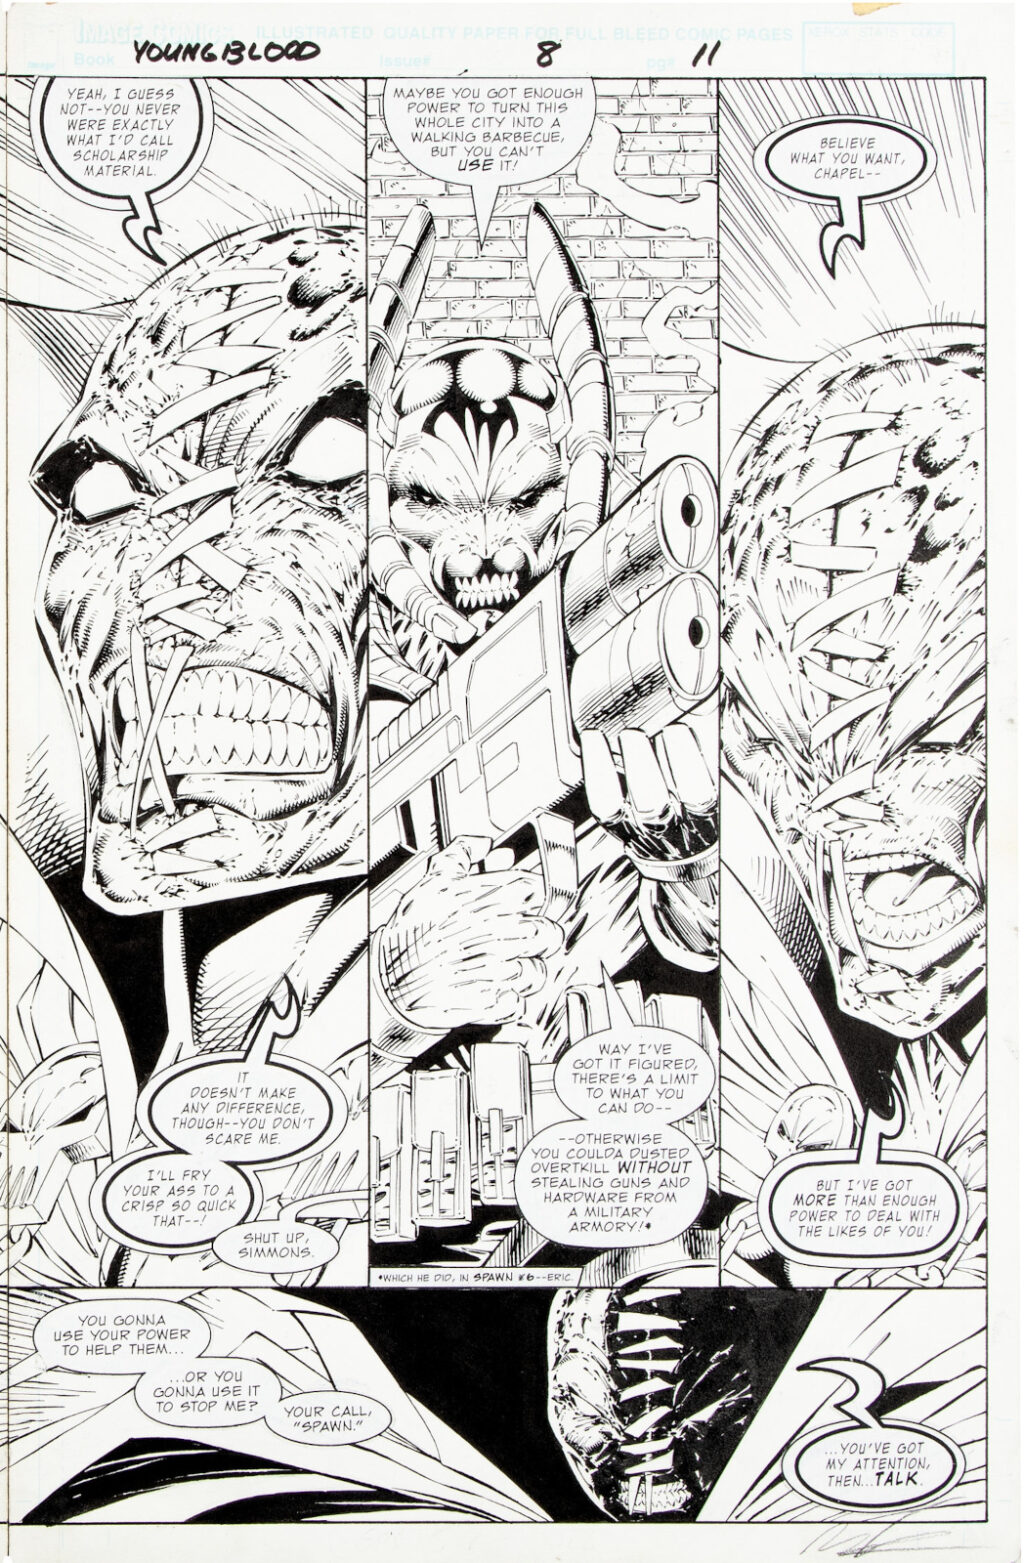 Youngblood issue 8 double splash by Rob Liefeld and Danny Miki 2